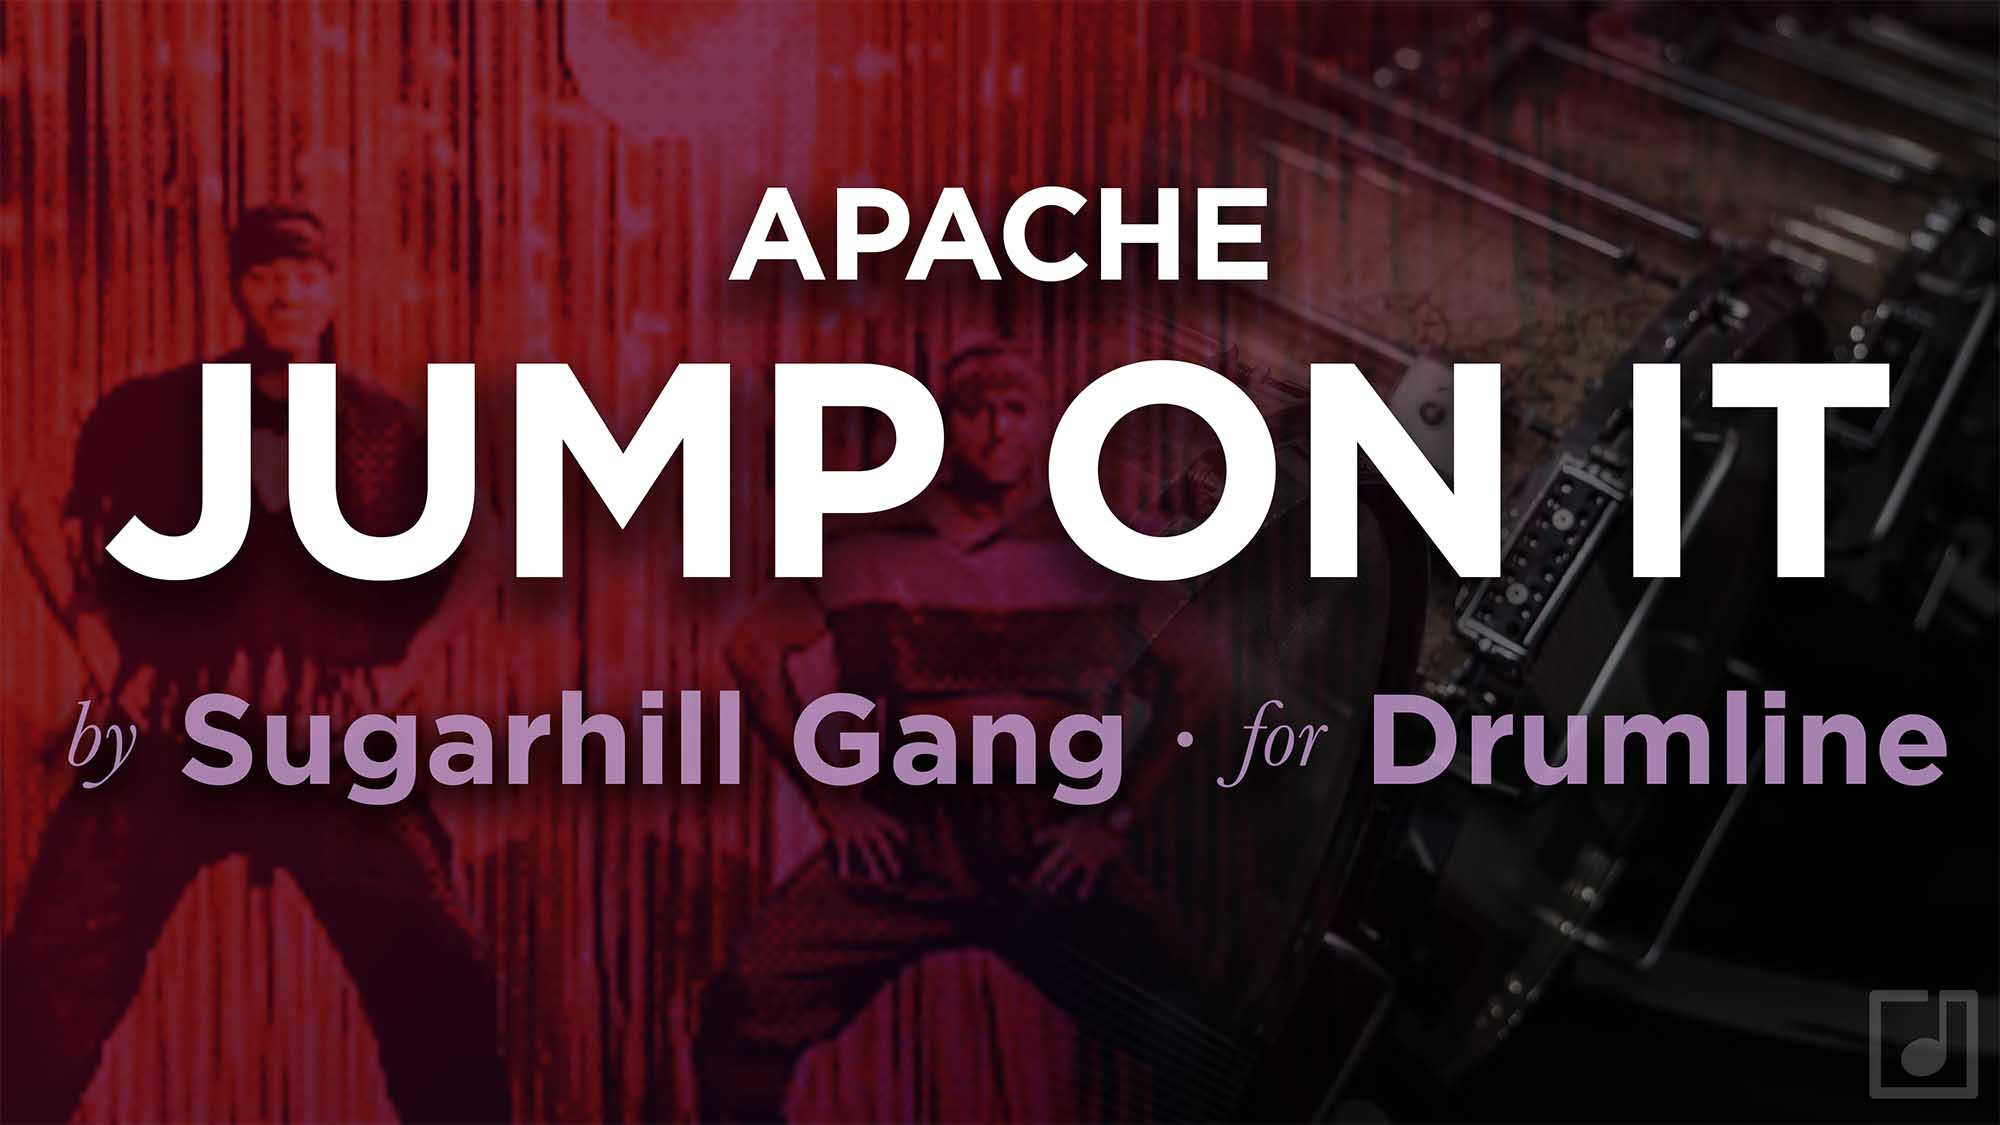 Jump On It (Apache) for Drumline.